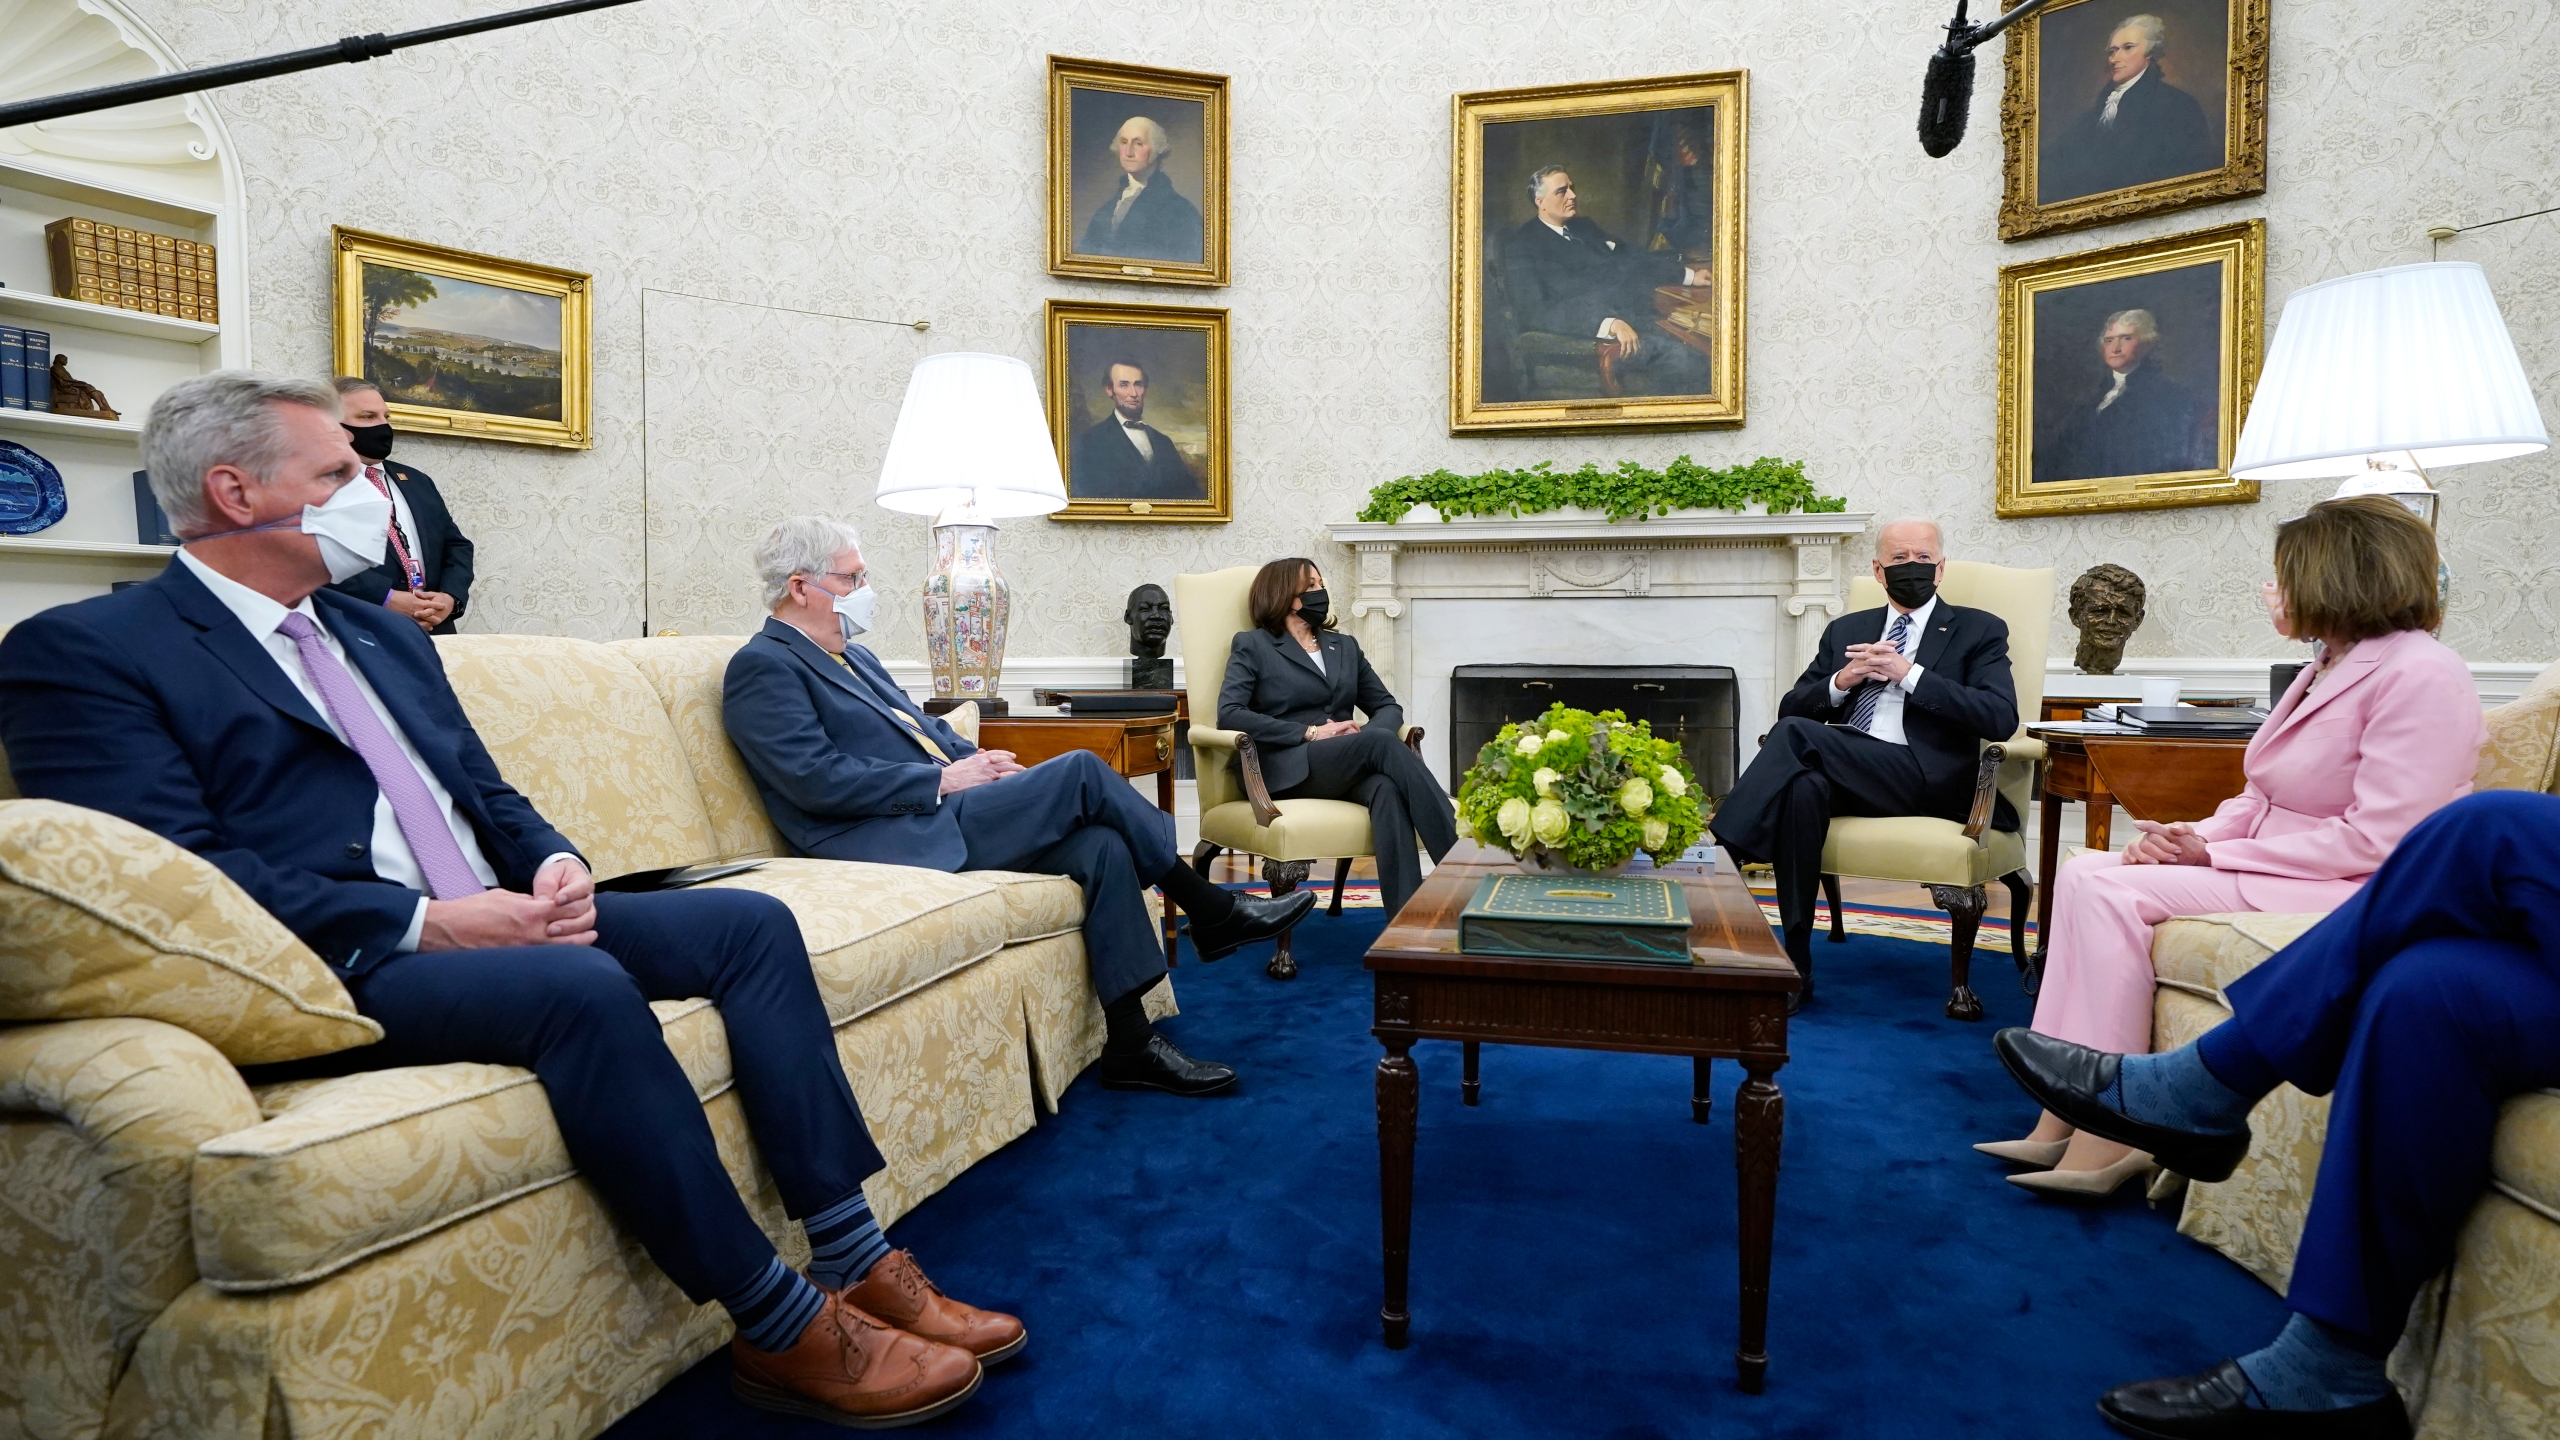 President Joe Biden speaks during a meeting with congressional leaders in the Oval Office of the White House, Wednesday, May 12, 2021, in Washington. From left, House Minority Leader Kevin McCarthy of Calif., Senate Minority Leader Mitch McConnell of Ky., Vice President Kamala, Biden, House Speaker Nancy Pelosi of Calif., and Senate Majority Leader Chuck Schumer of N.Y.. (AP Photo/Evan Vucci)